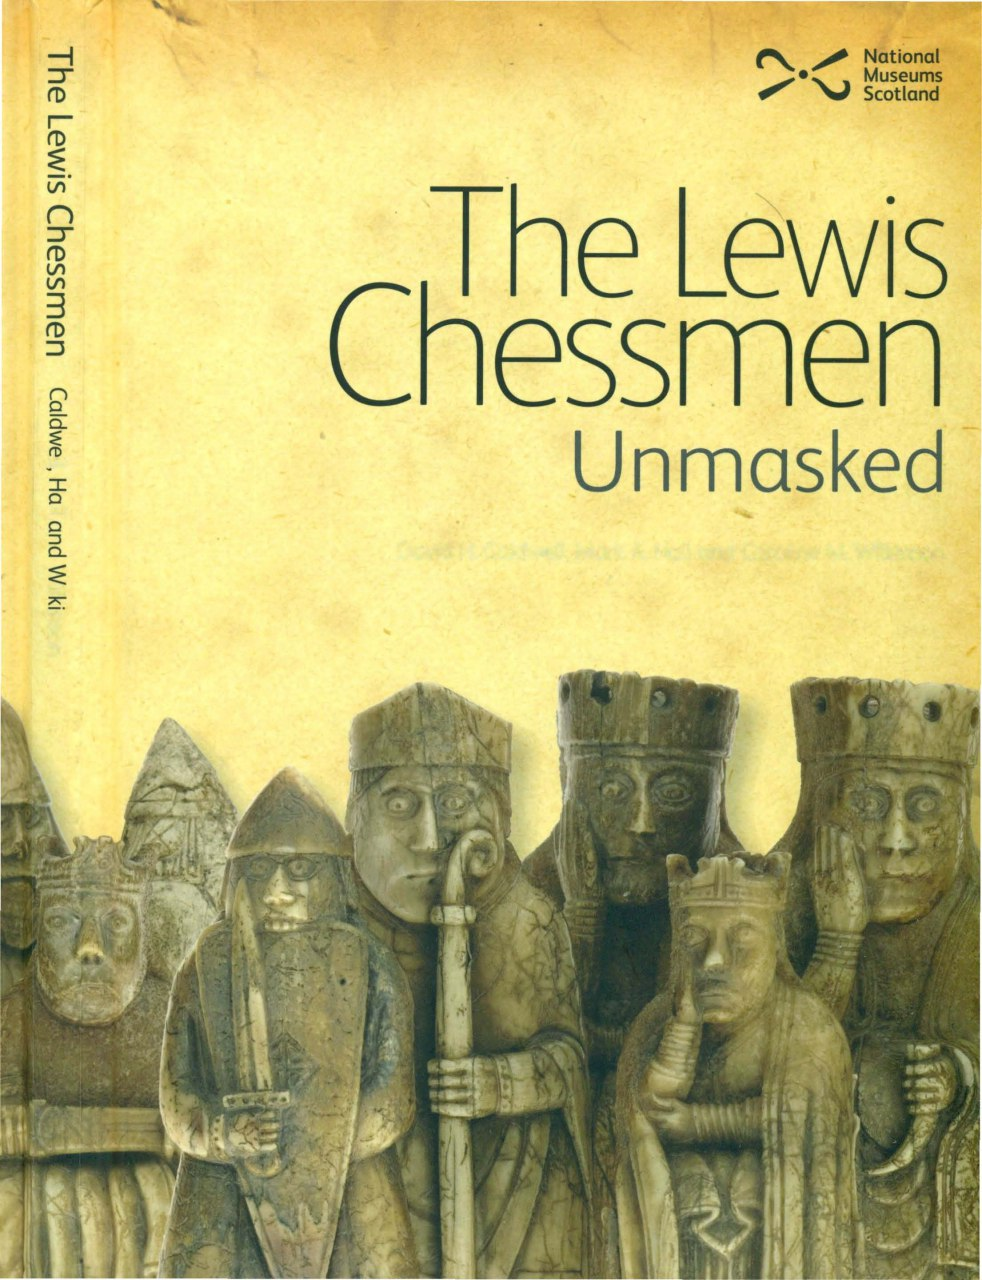 The Lewis Chessmen: Unmasked:  Book by Caldwell, David, Hall, Img_2535